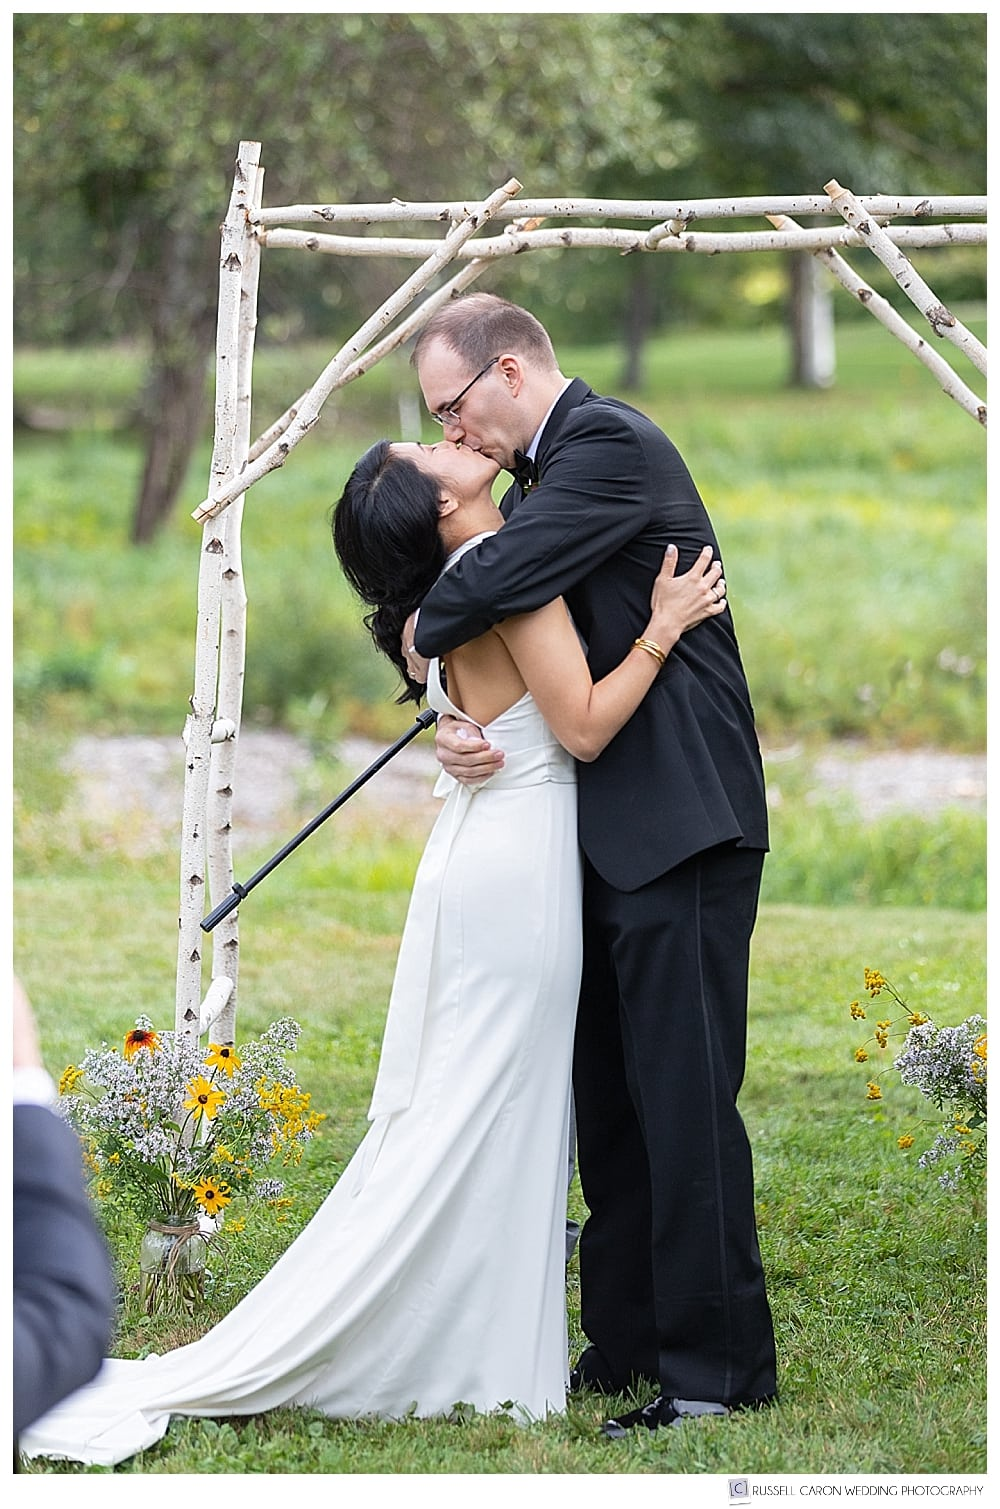 bride and groom's first kiss photo